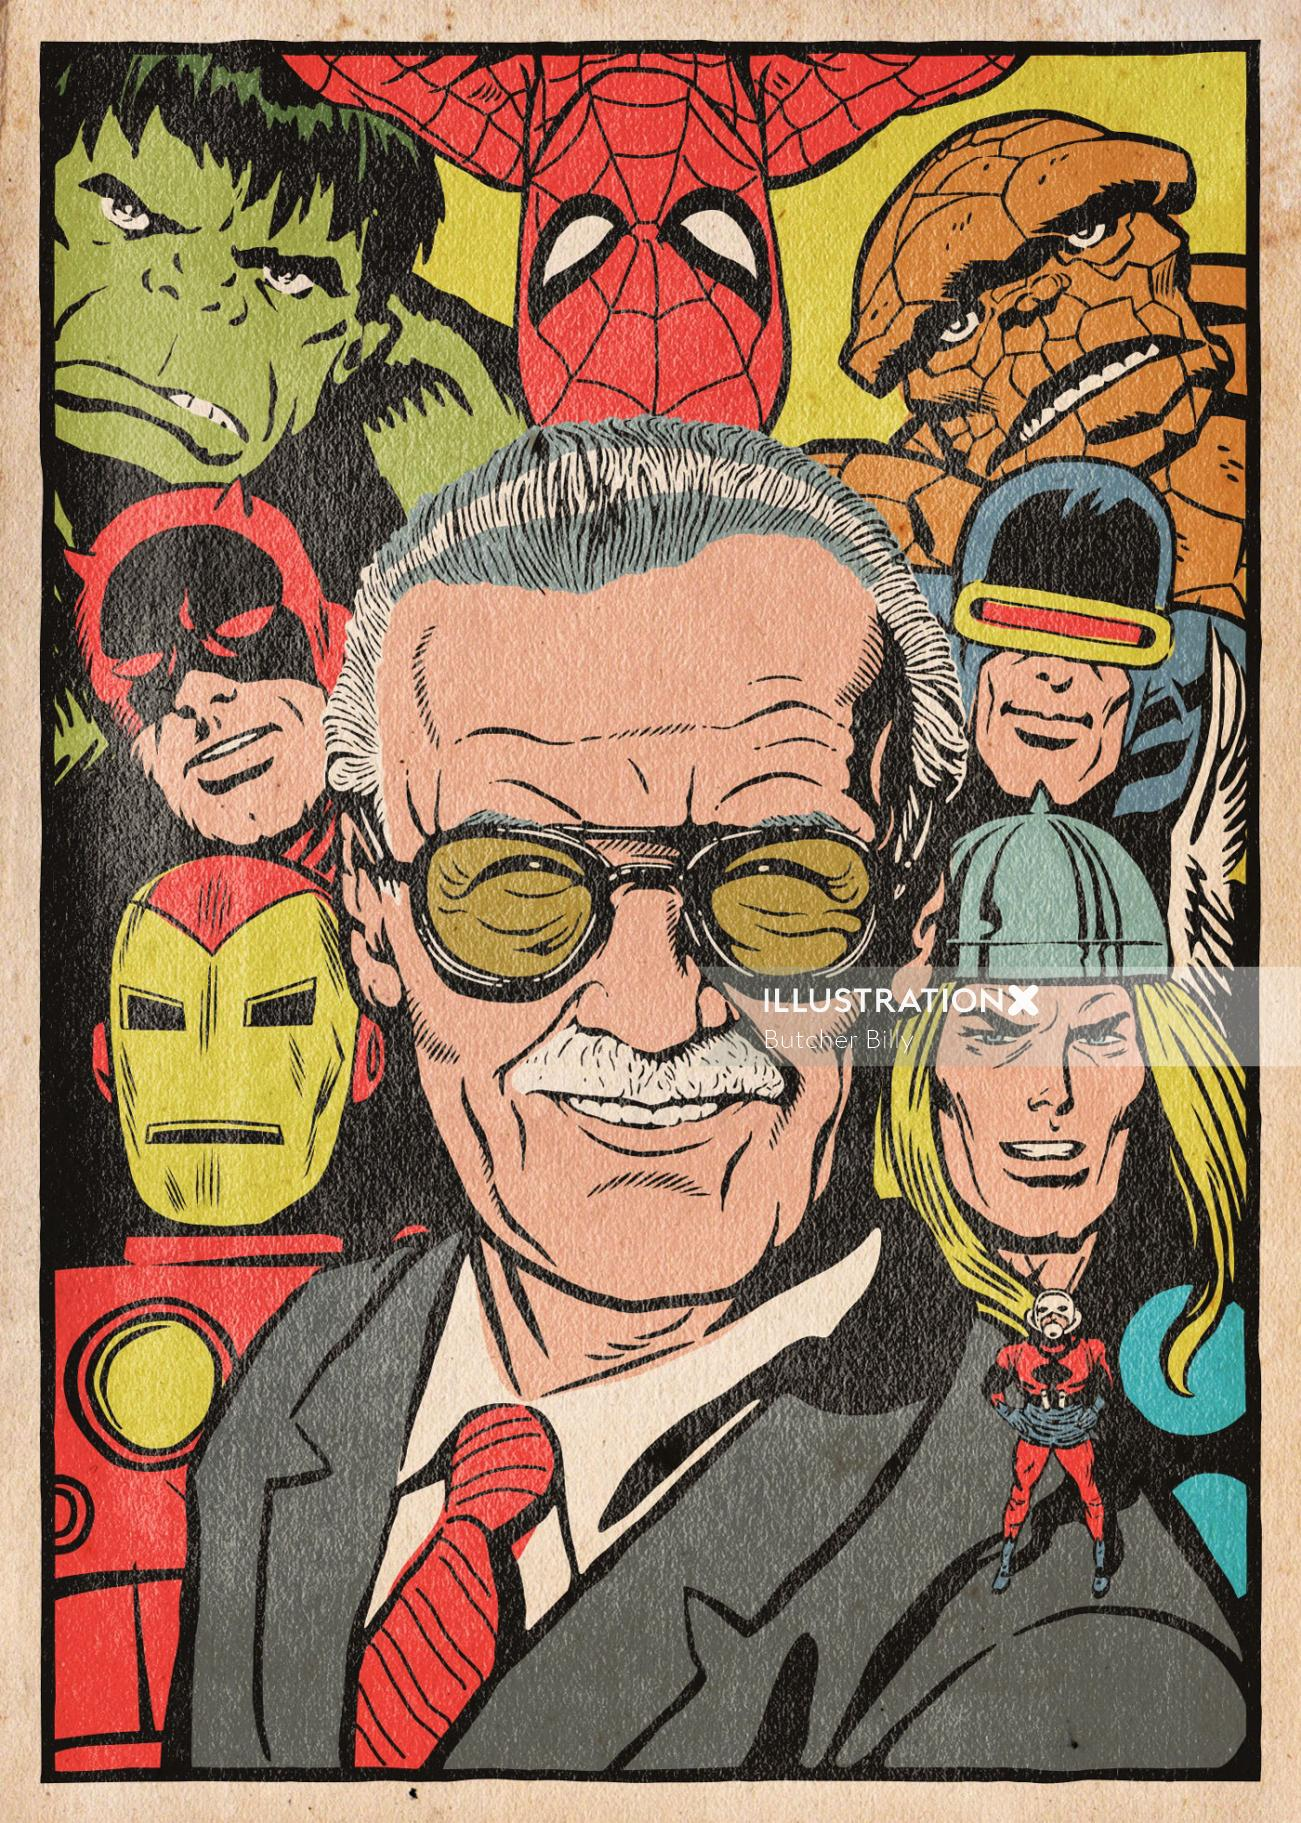 Comic panels telling the biography of Stan Lee